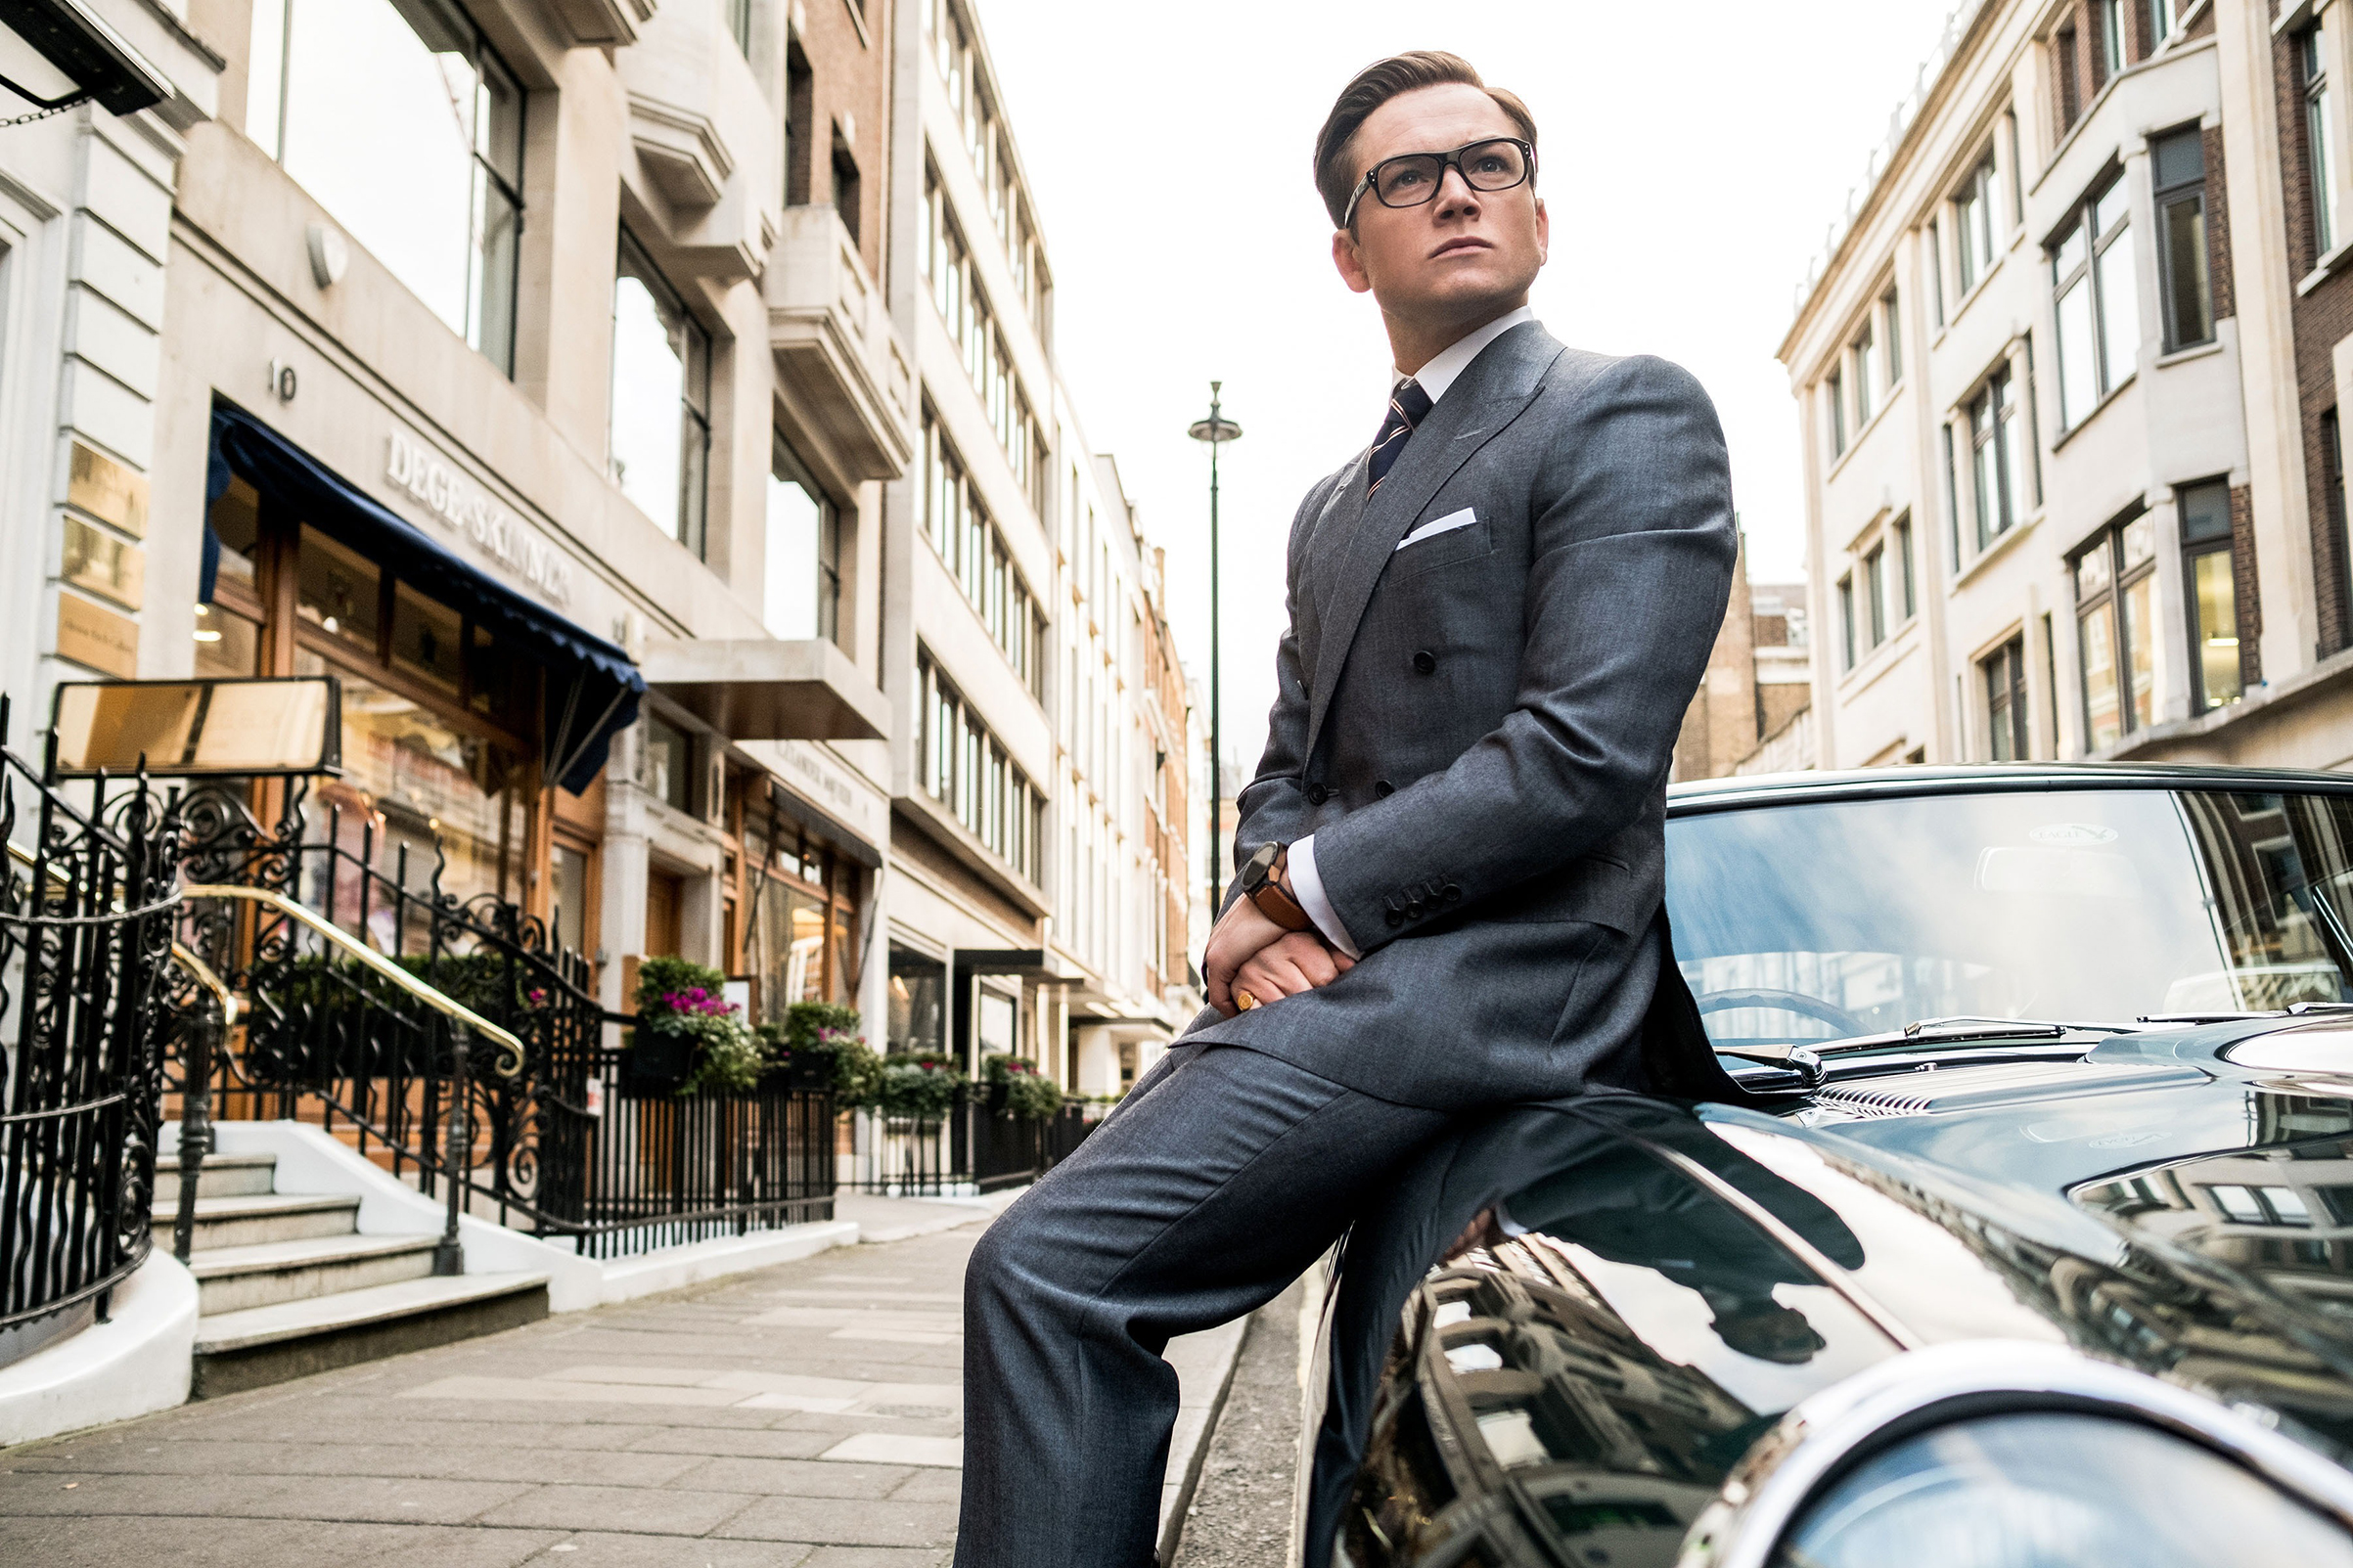 Egerton's Eggsy: If the suit fits, try not to destroy it